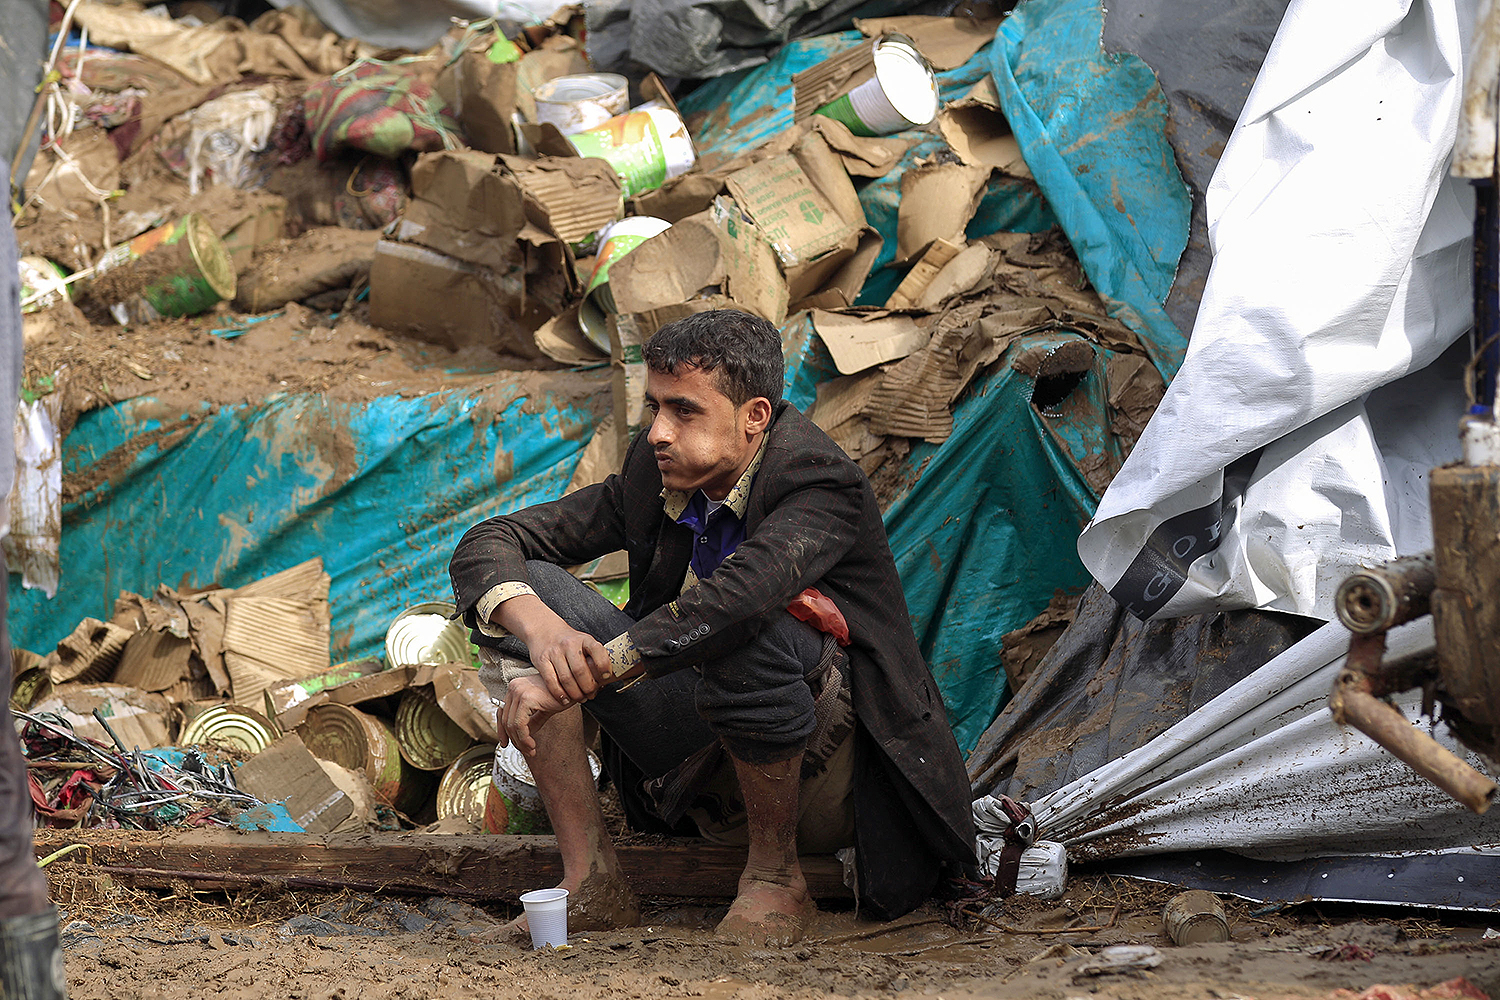 A Yemeni street vendor sits amid the remains of his flood-damaged stall following heavy rains in the capital city of Sanaa on April 14. MOHAMMED HUWAIS/AFP via Getty Images